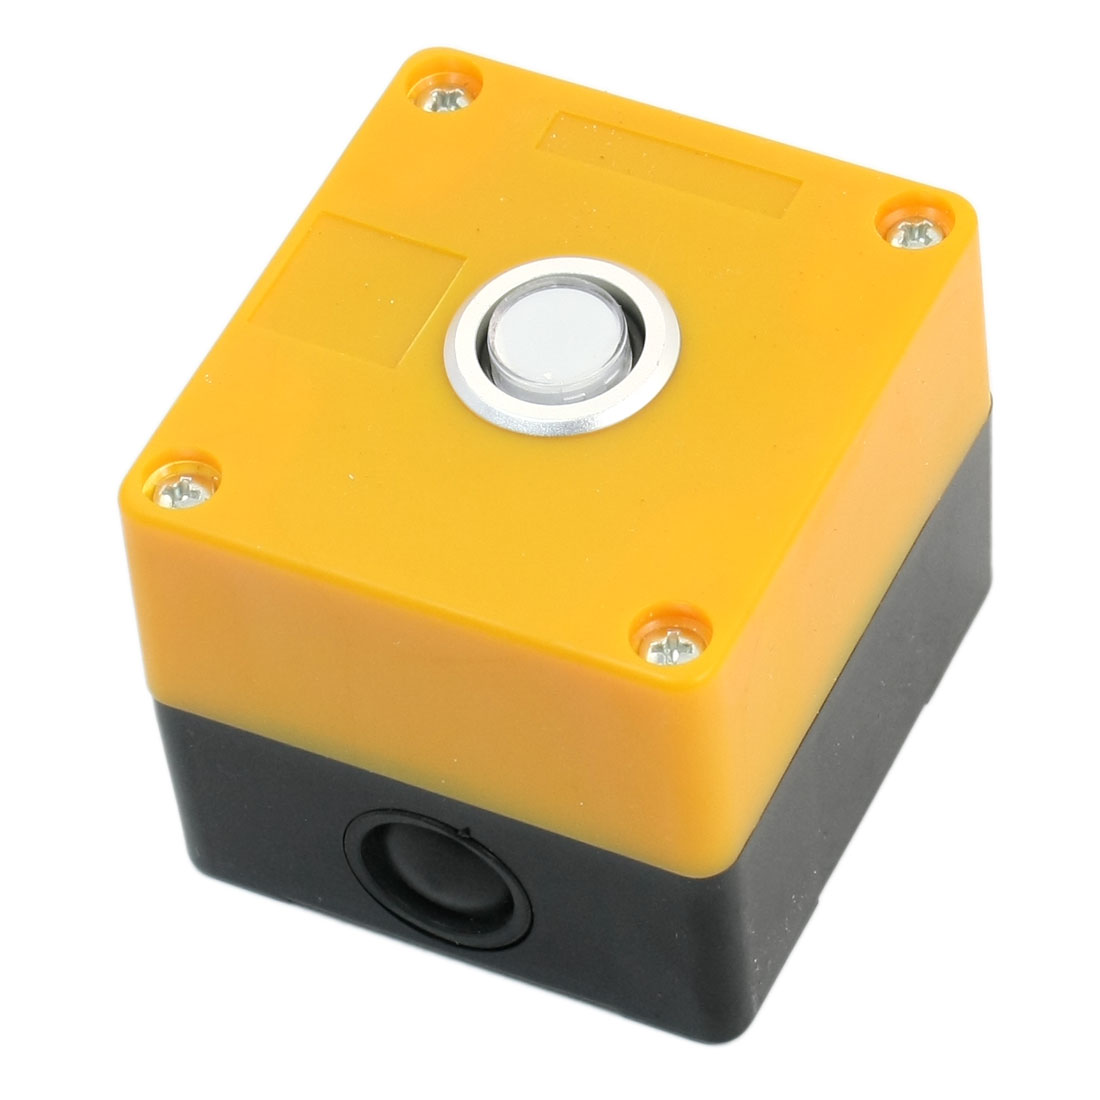 24V 15mm Dia Yellow Plastic Case Warm White Accident Signal Indicator Light Pilot Lamp Bulb Control Station Box